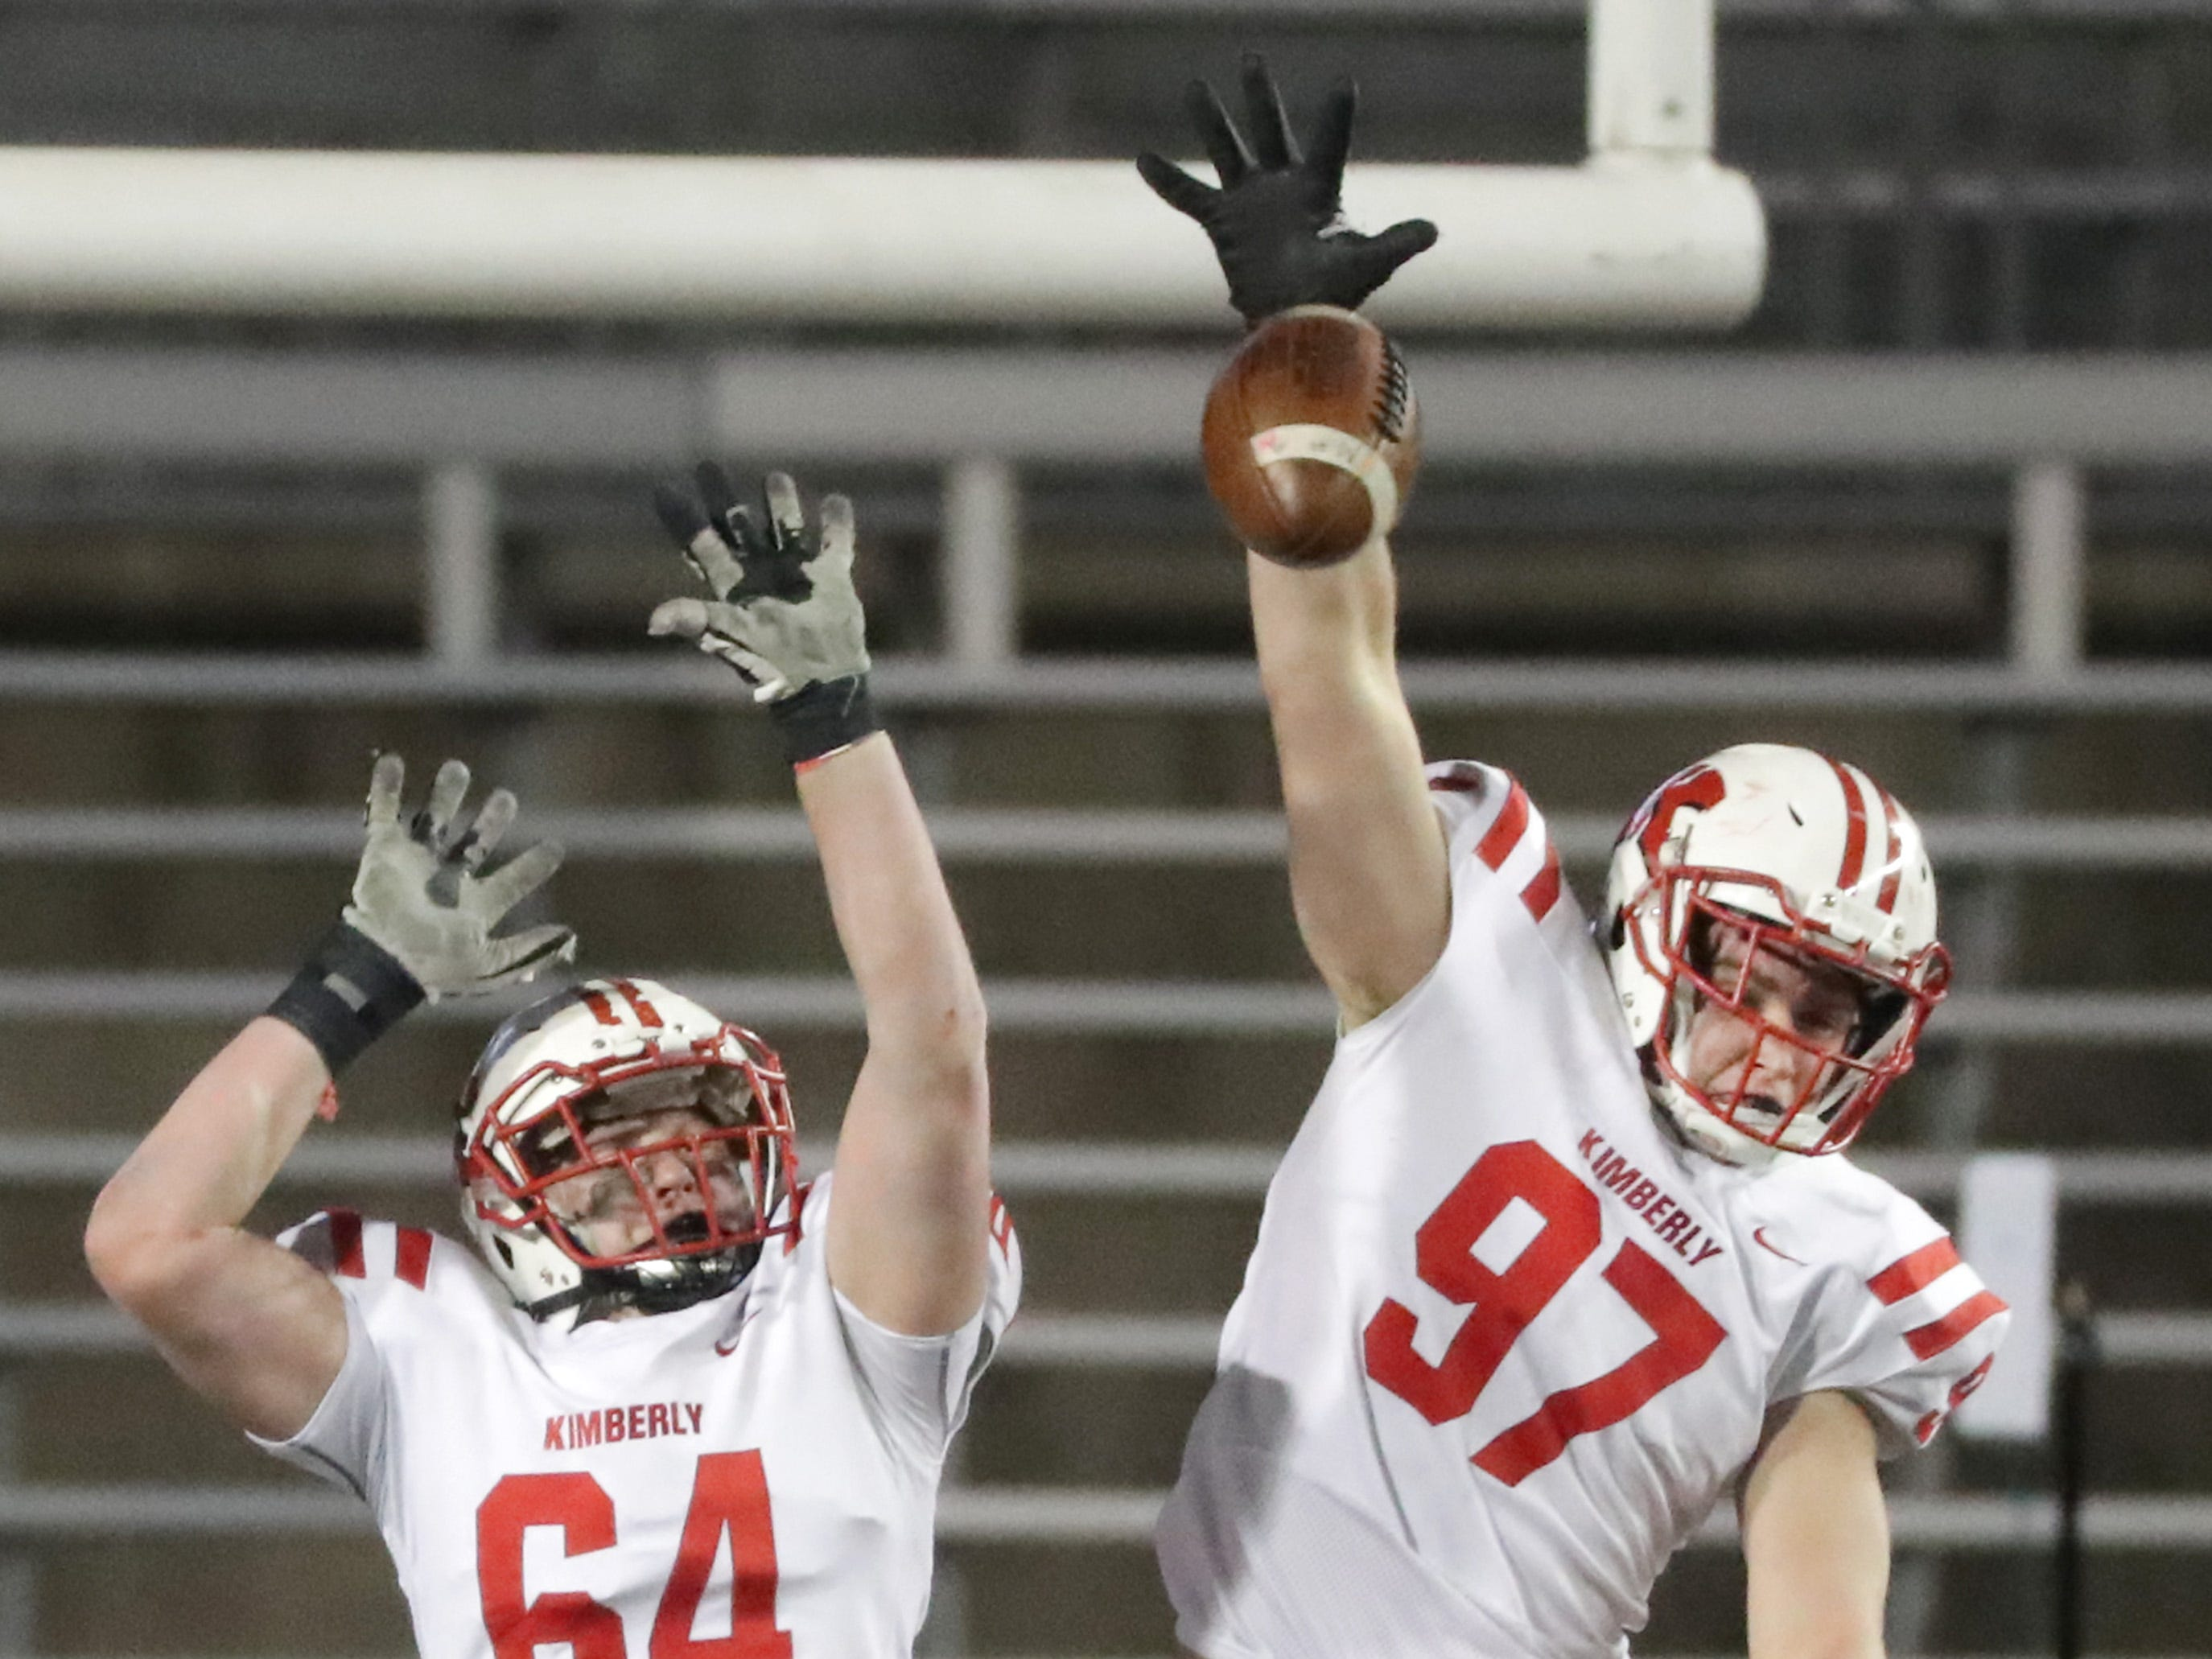 Kimberly High School's #64 Trevor Gardner and #97 Logan Wilson against Muskego High School during the WIAA Division 1 state championship football game on Friday, November 16, 2018, at Camp Randall in Madison, Wis.